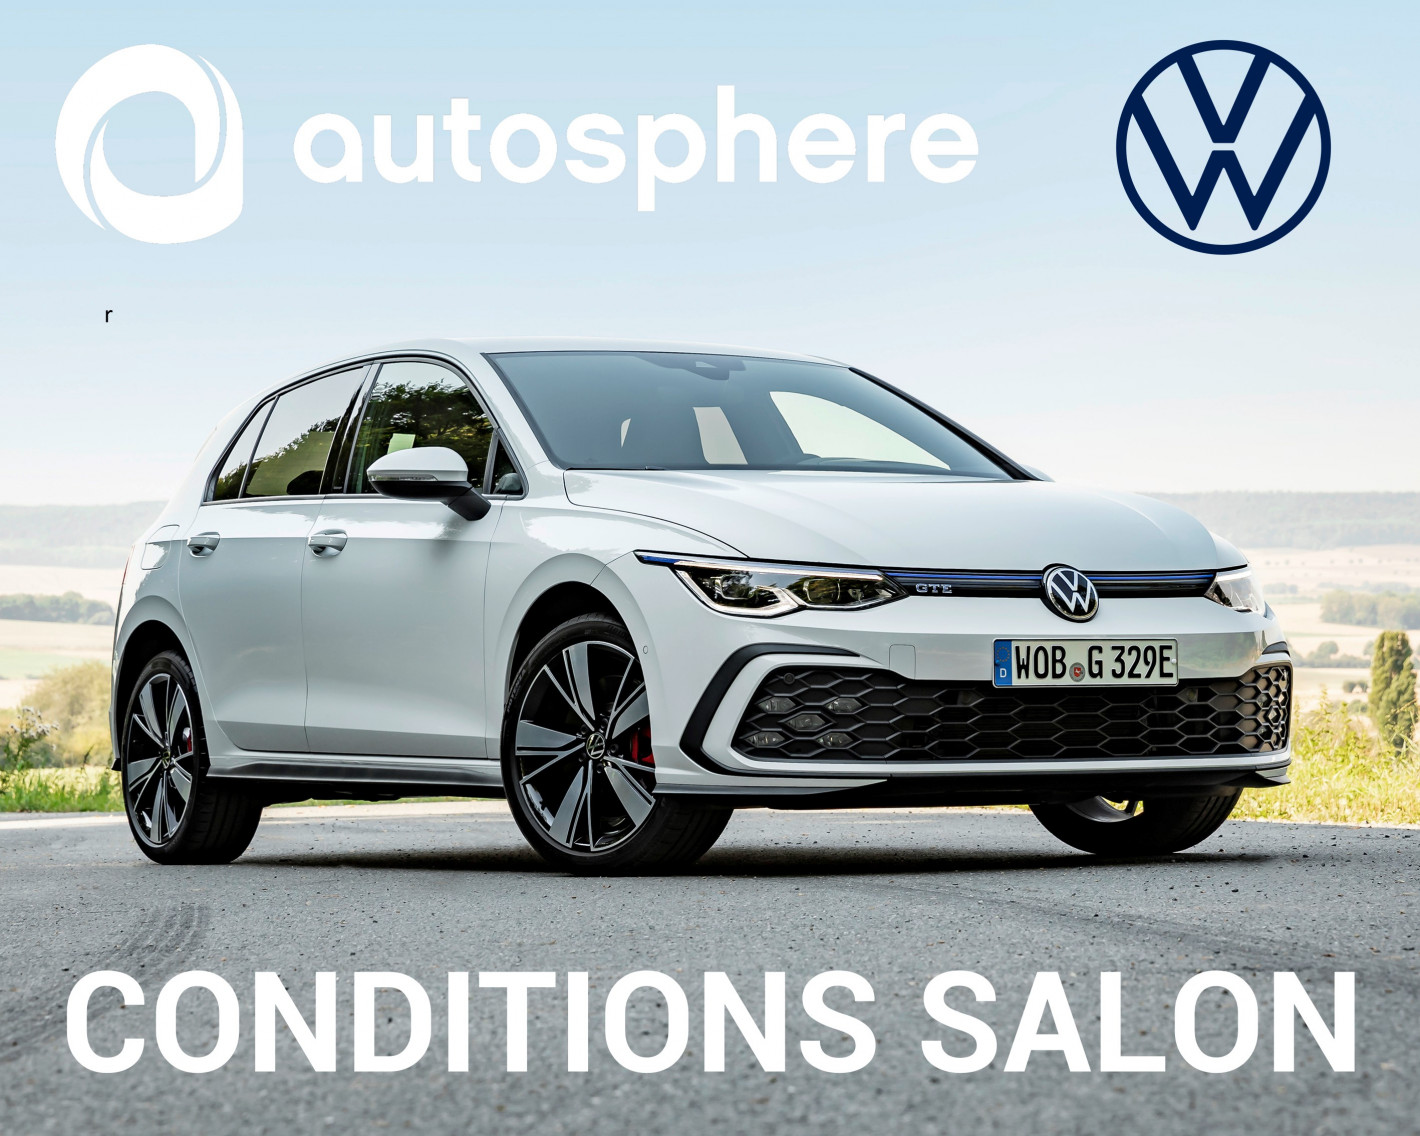 Conditions Salon Volkswagen Autosphere